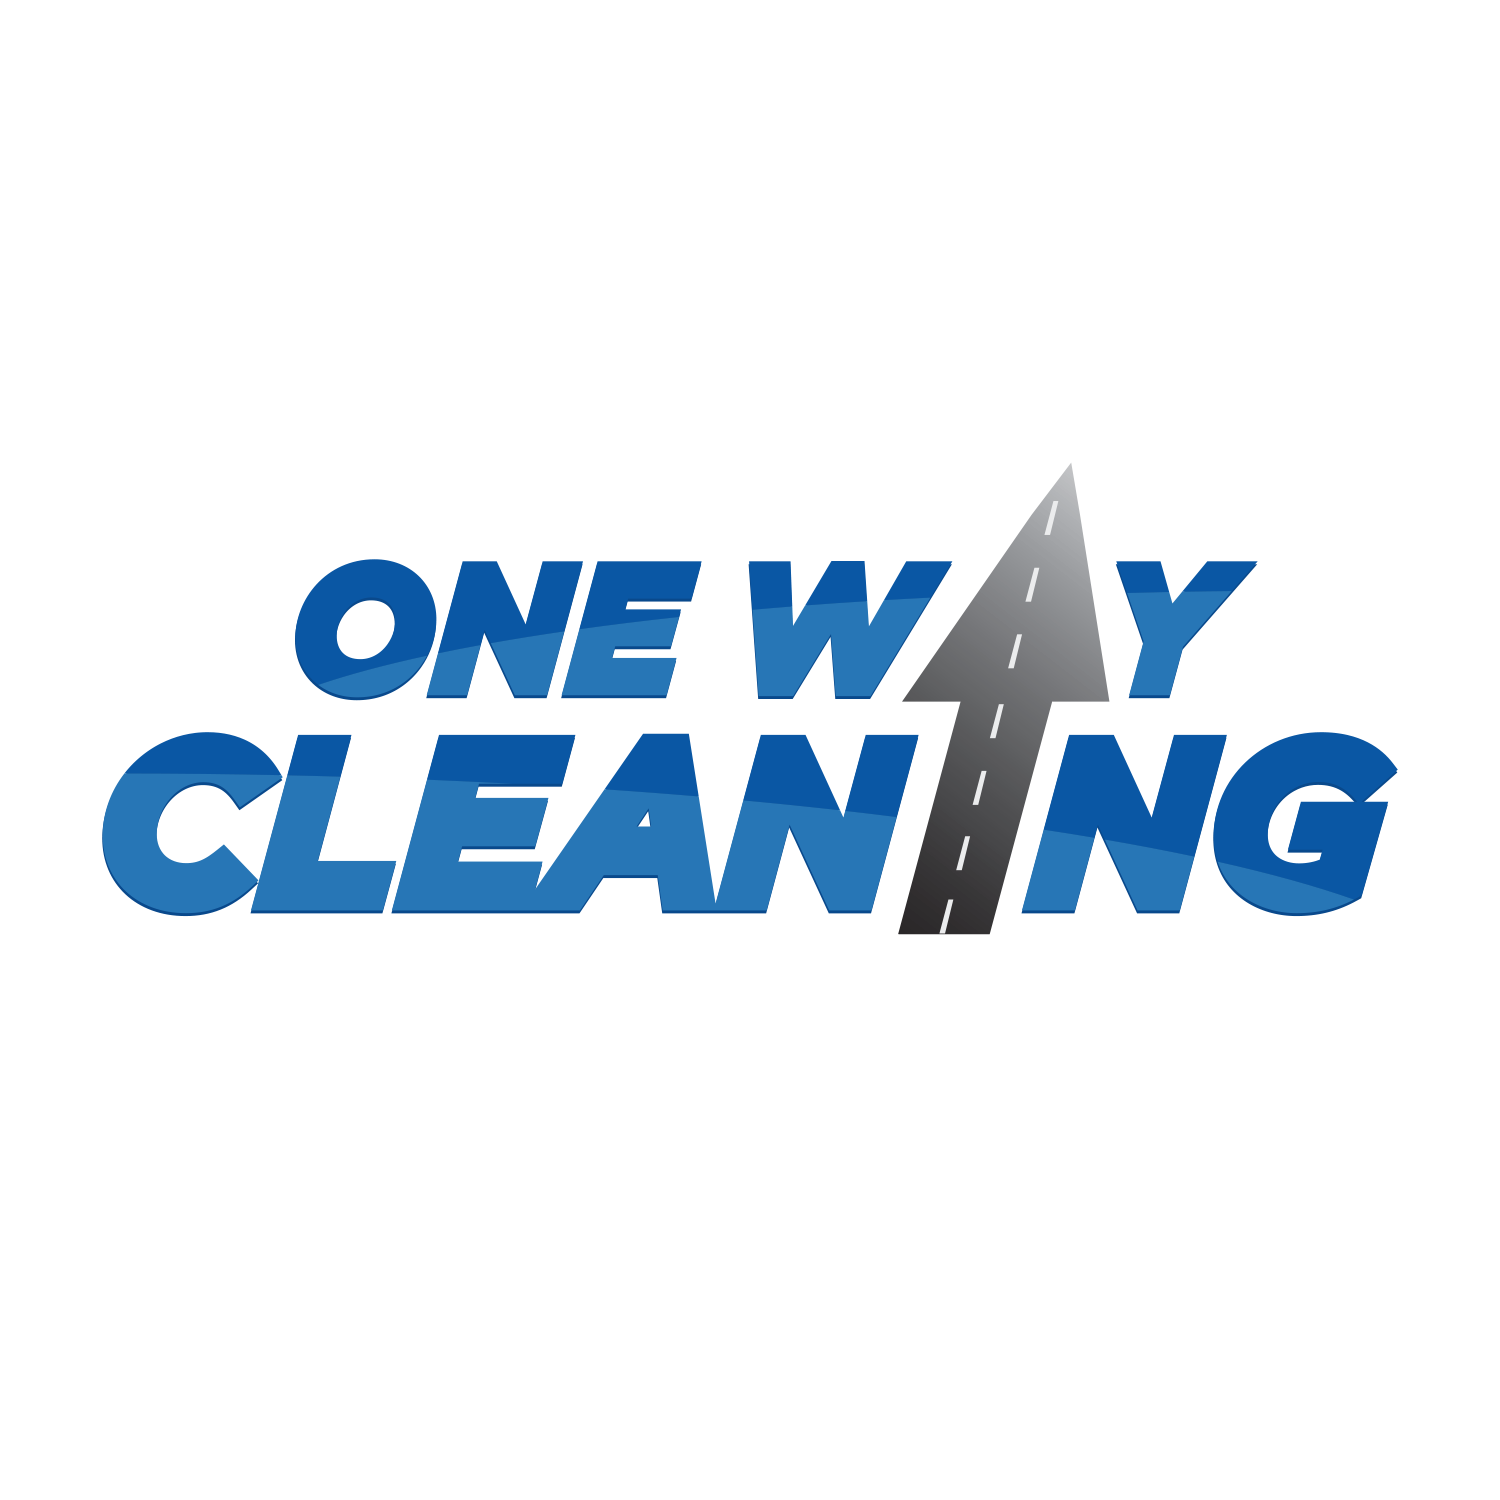 Cleaning Service Logo Design